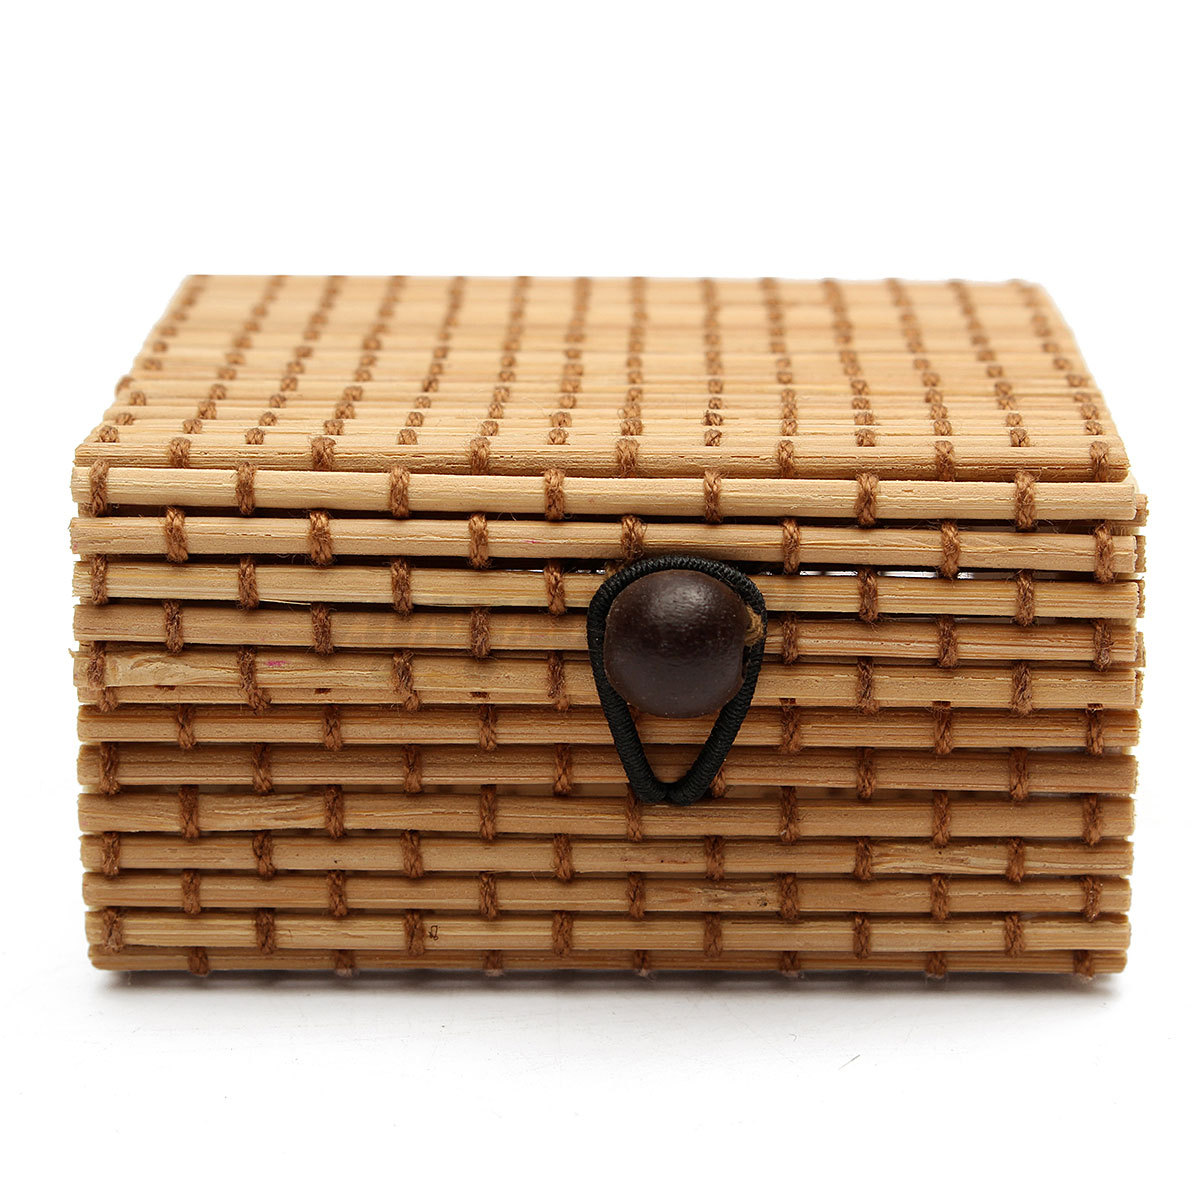 Ring necklace earrings bamboo case jewelry storage box for Ring case